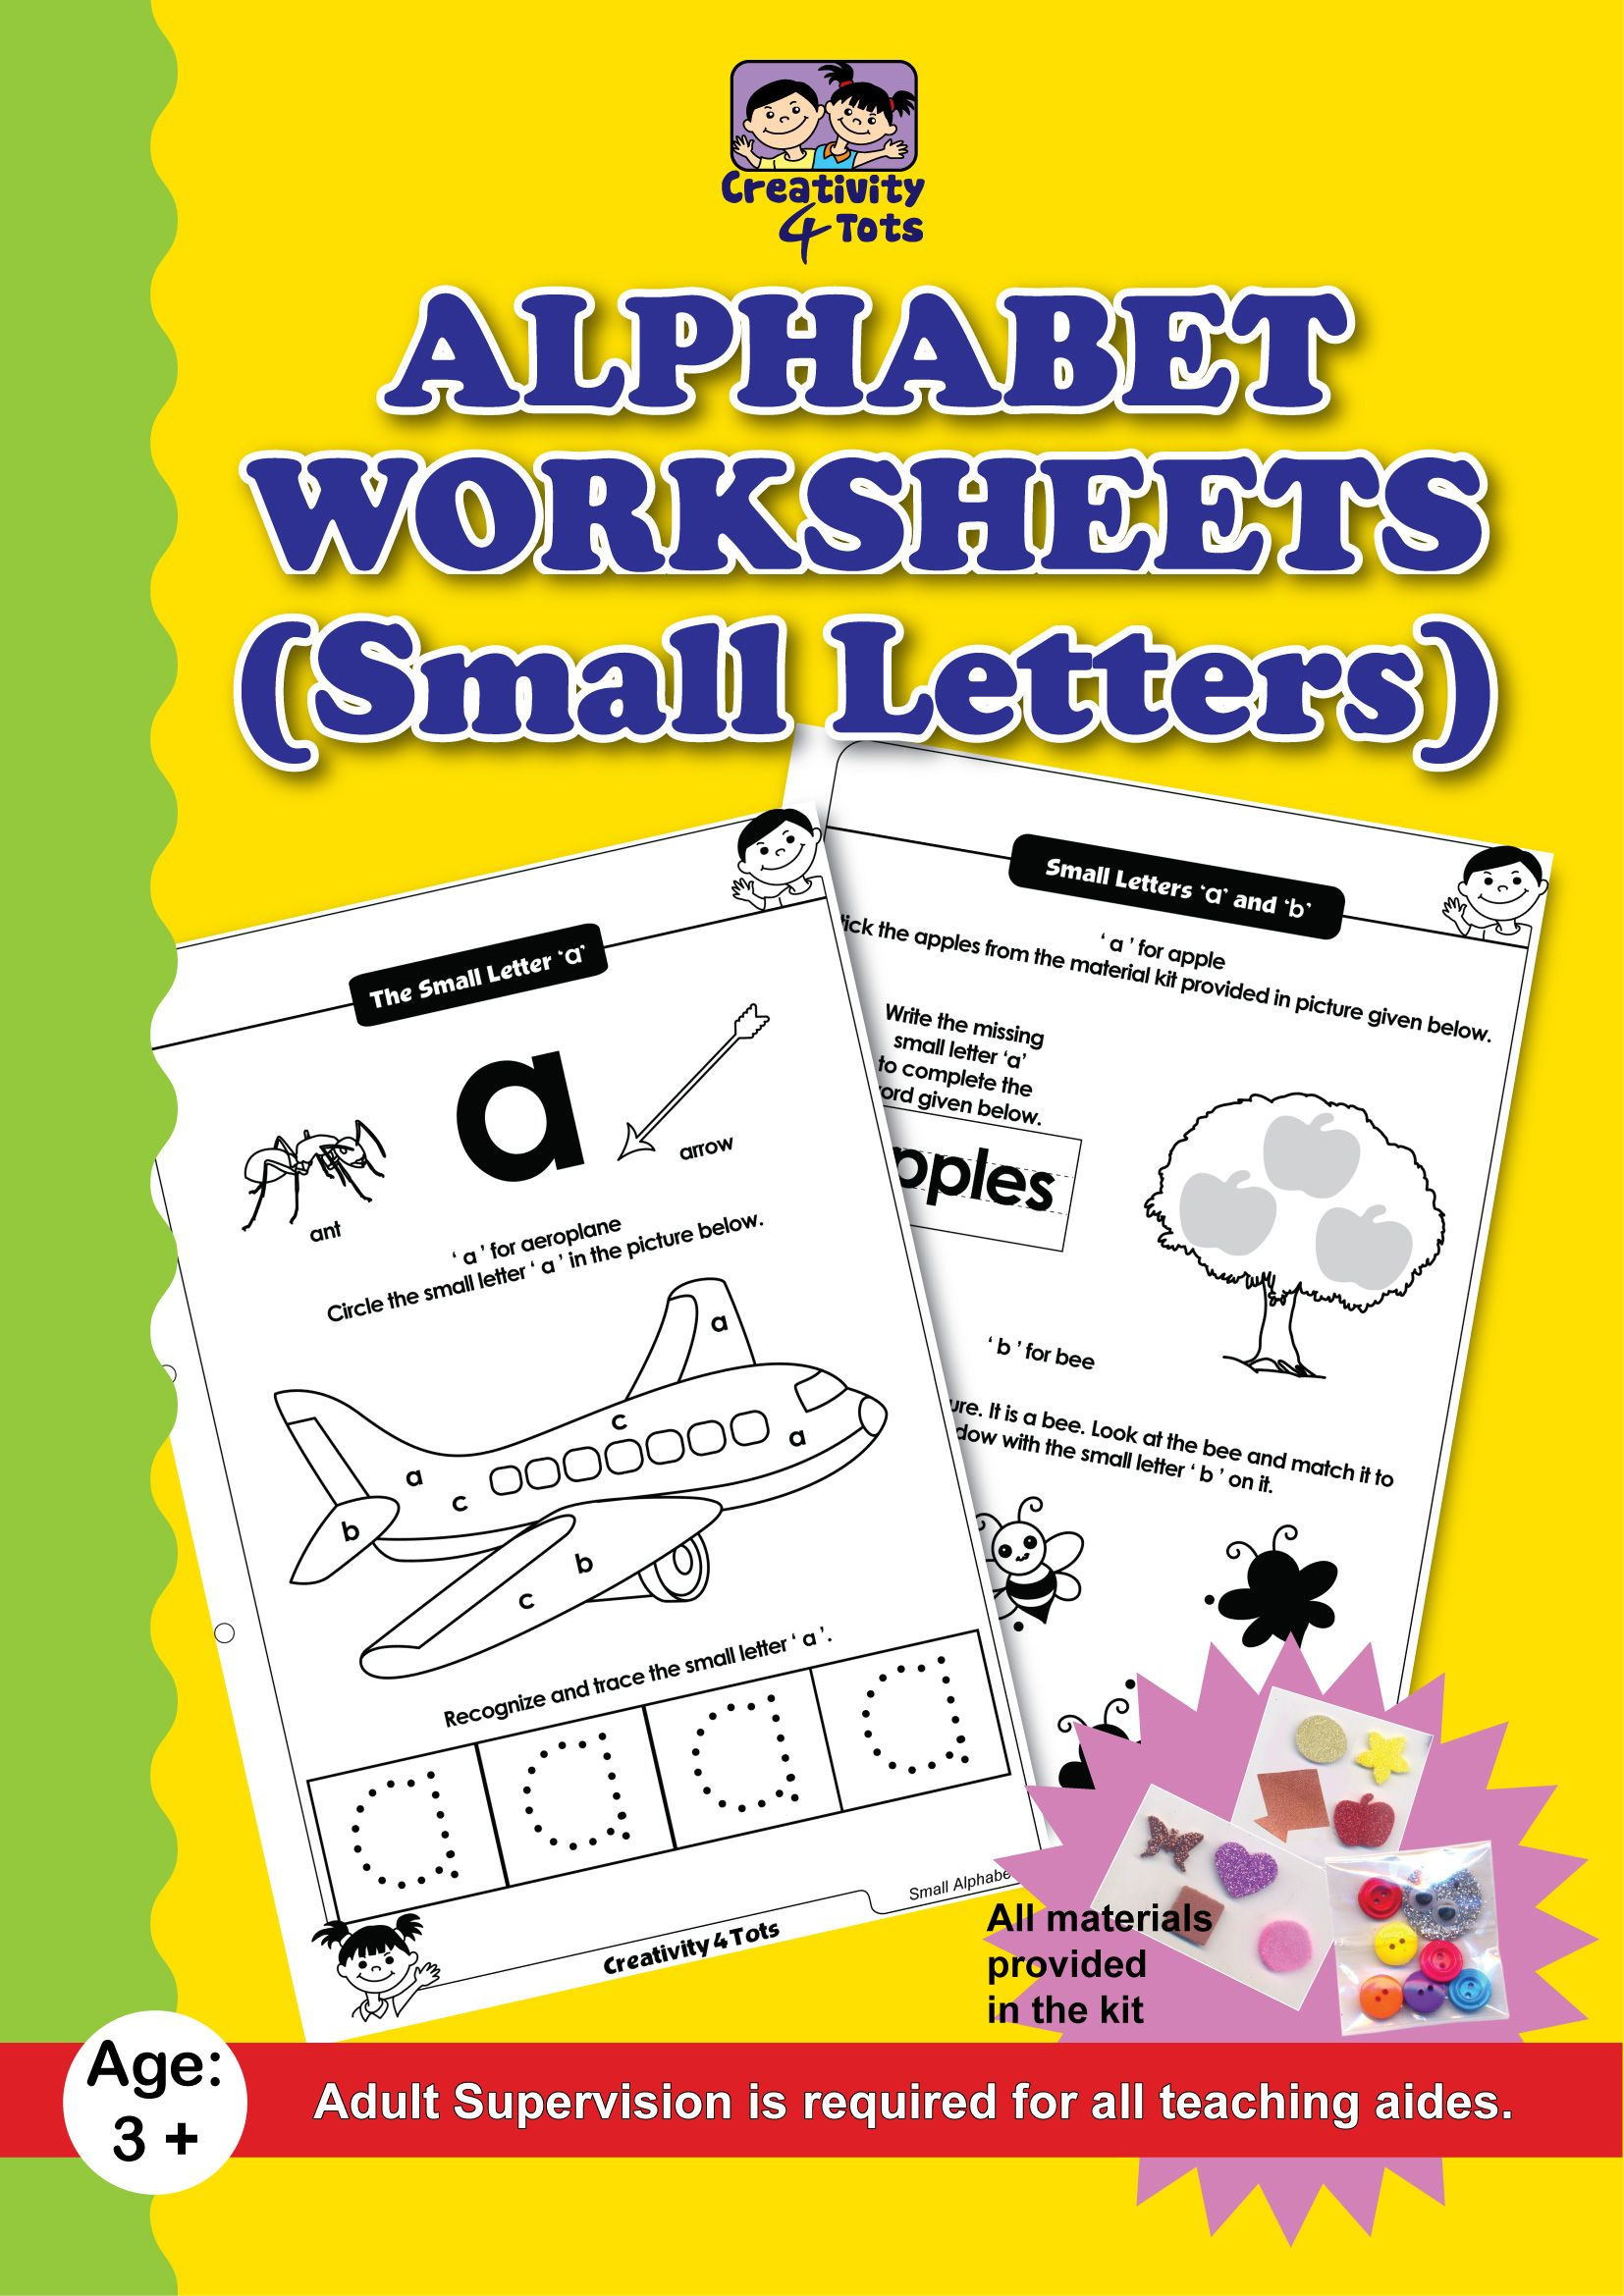 Pin By Creativity4tots On Worksheets With Images